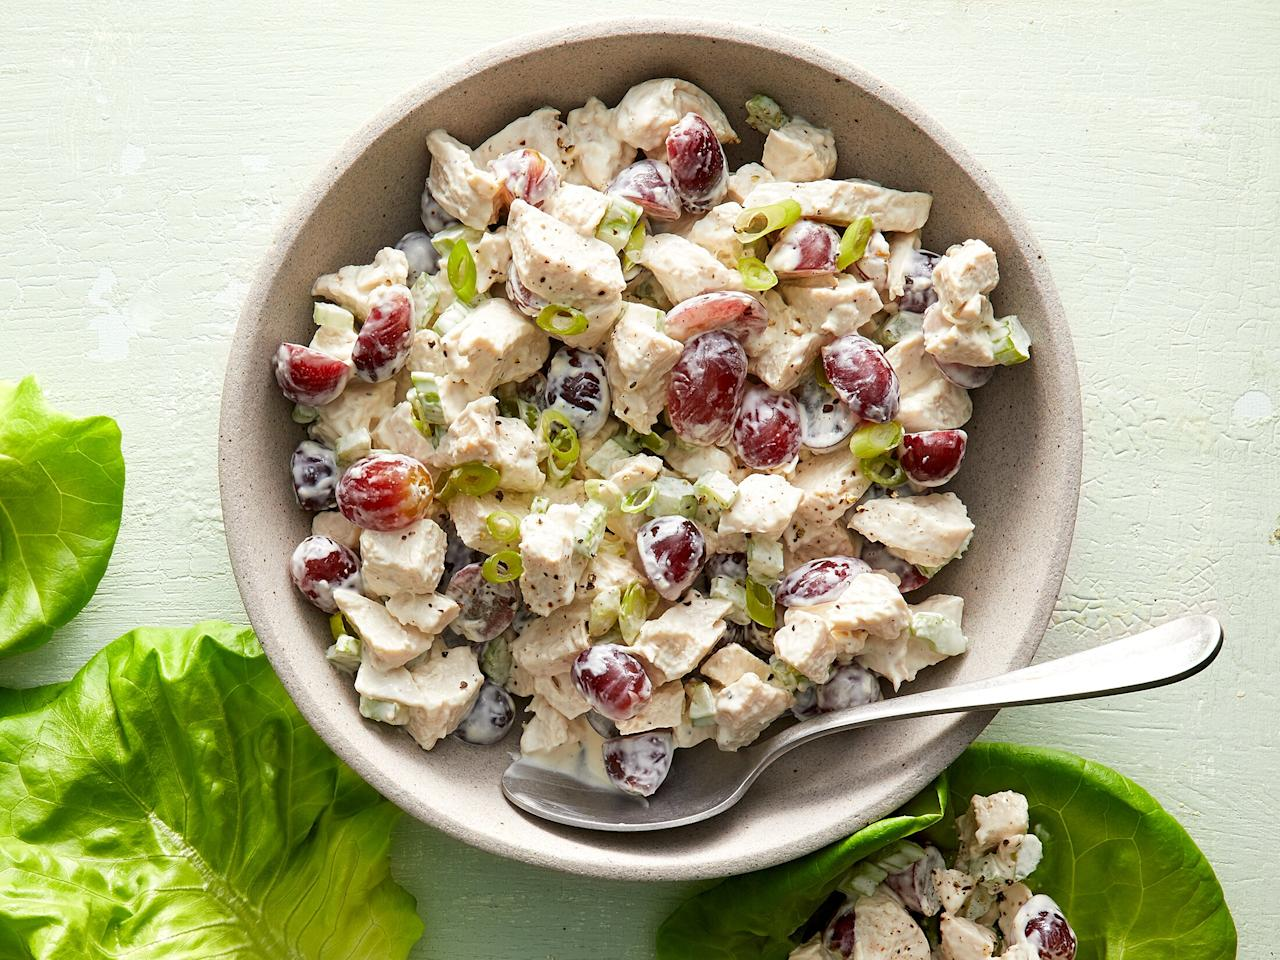 """<p>Sweet red grapes and crunchy celery make this chicken salad sing, and also balance out the slight tang from the yogurt and lemon. But go ahead and customize the mix-ins with whatever you desire (perhaps some chopped nuts or dried fruit) because this chicken salad recipe is easily adaptable. We use rotisserie chicken (look for unseasoned to keep sodium in check!) to simplify things, but any leftover cooked chicken will work.</p> <p> <a href=""""https://www.cookinglight.com/recipes/chicken-salad-with-grapes"""">View Recipe: Tangy Chicken Salad With Grapes</a></p>"""